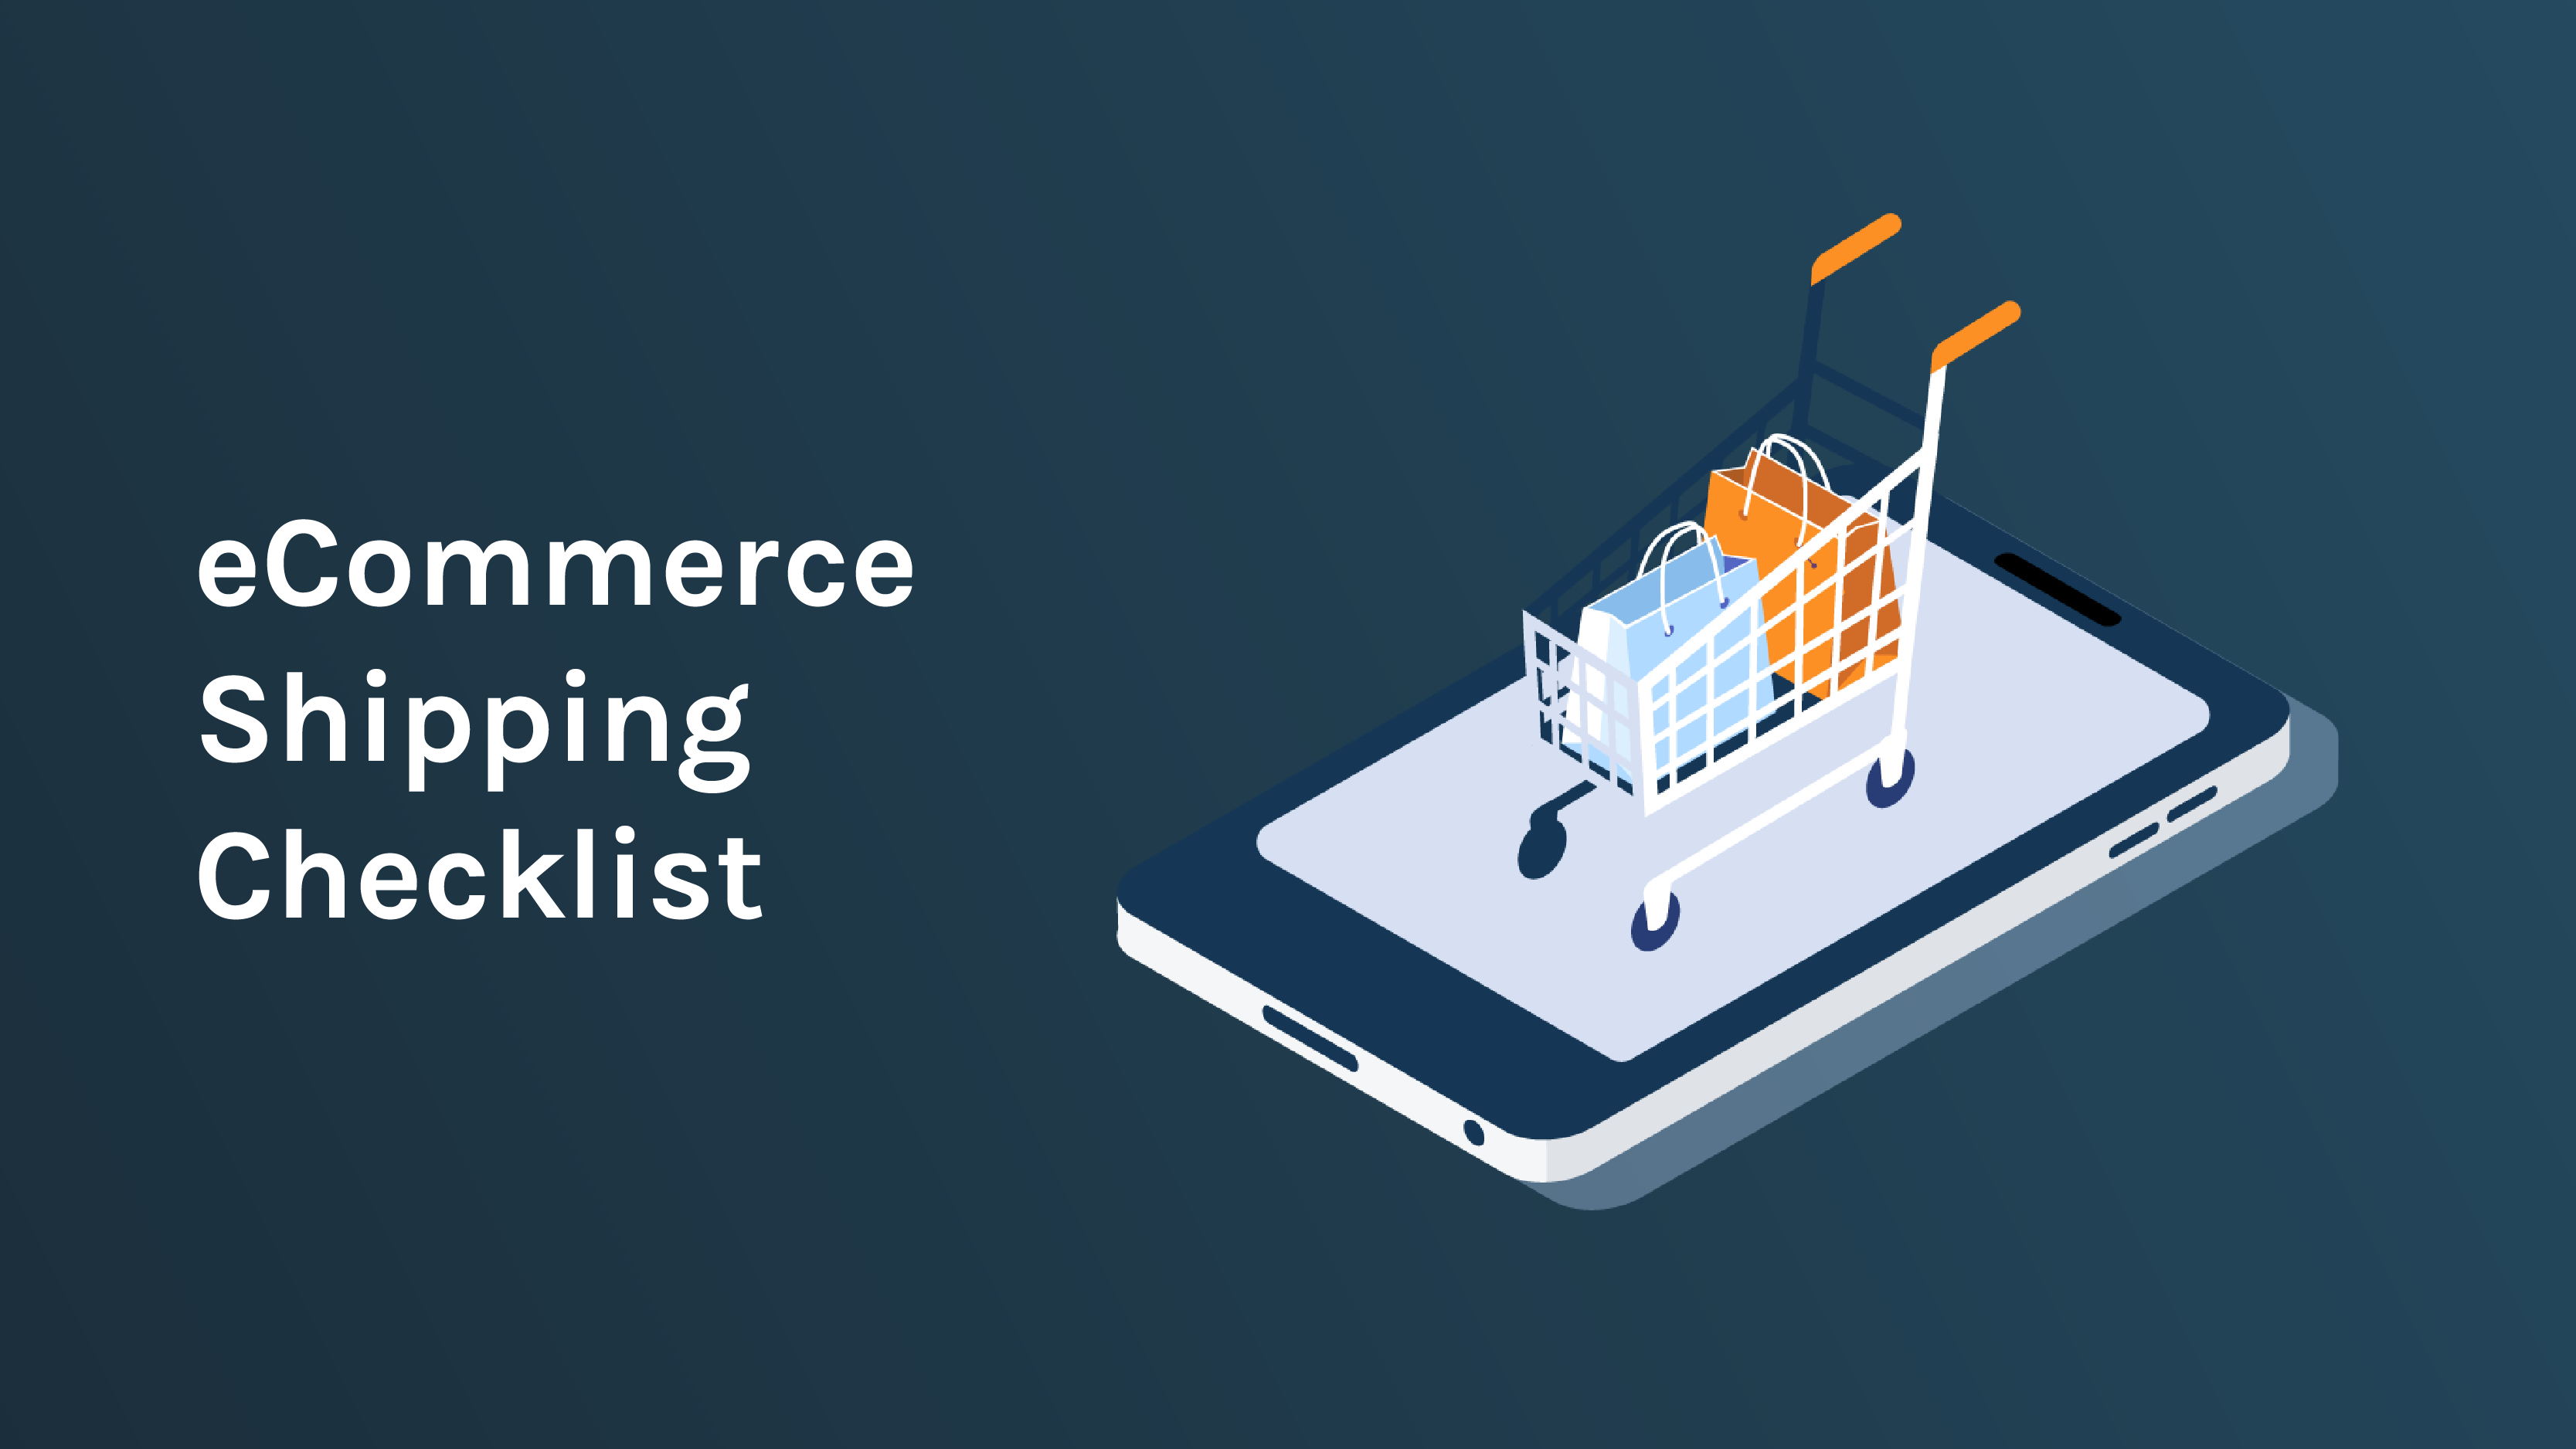 Free Downloadable eCommerce Shipping Checklist